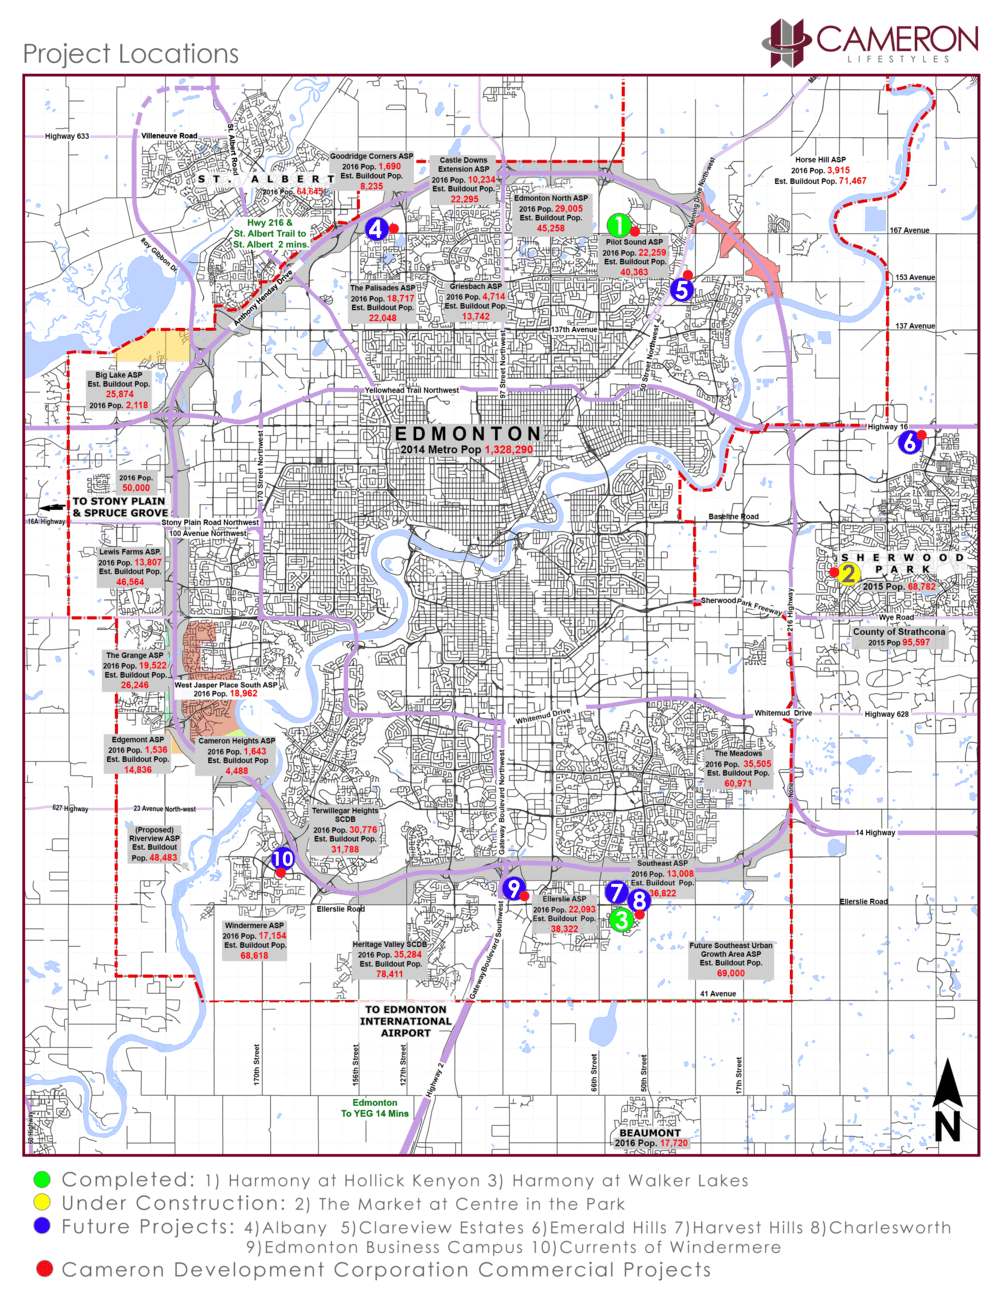 Map of all property project locations in Edmonton and surrounding area